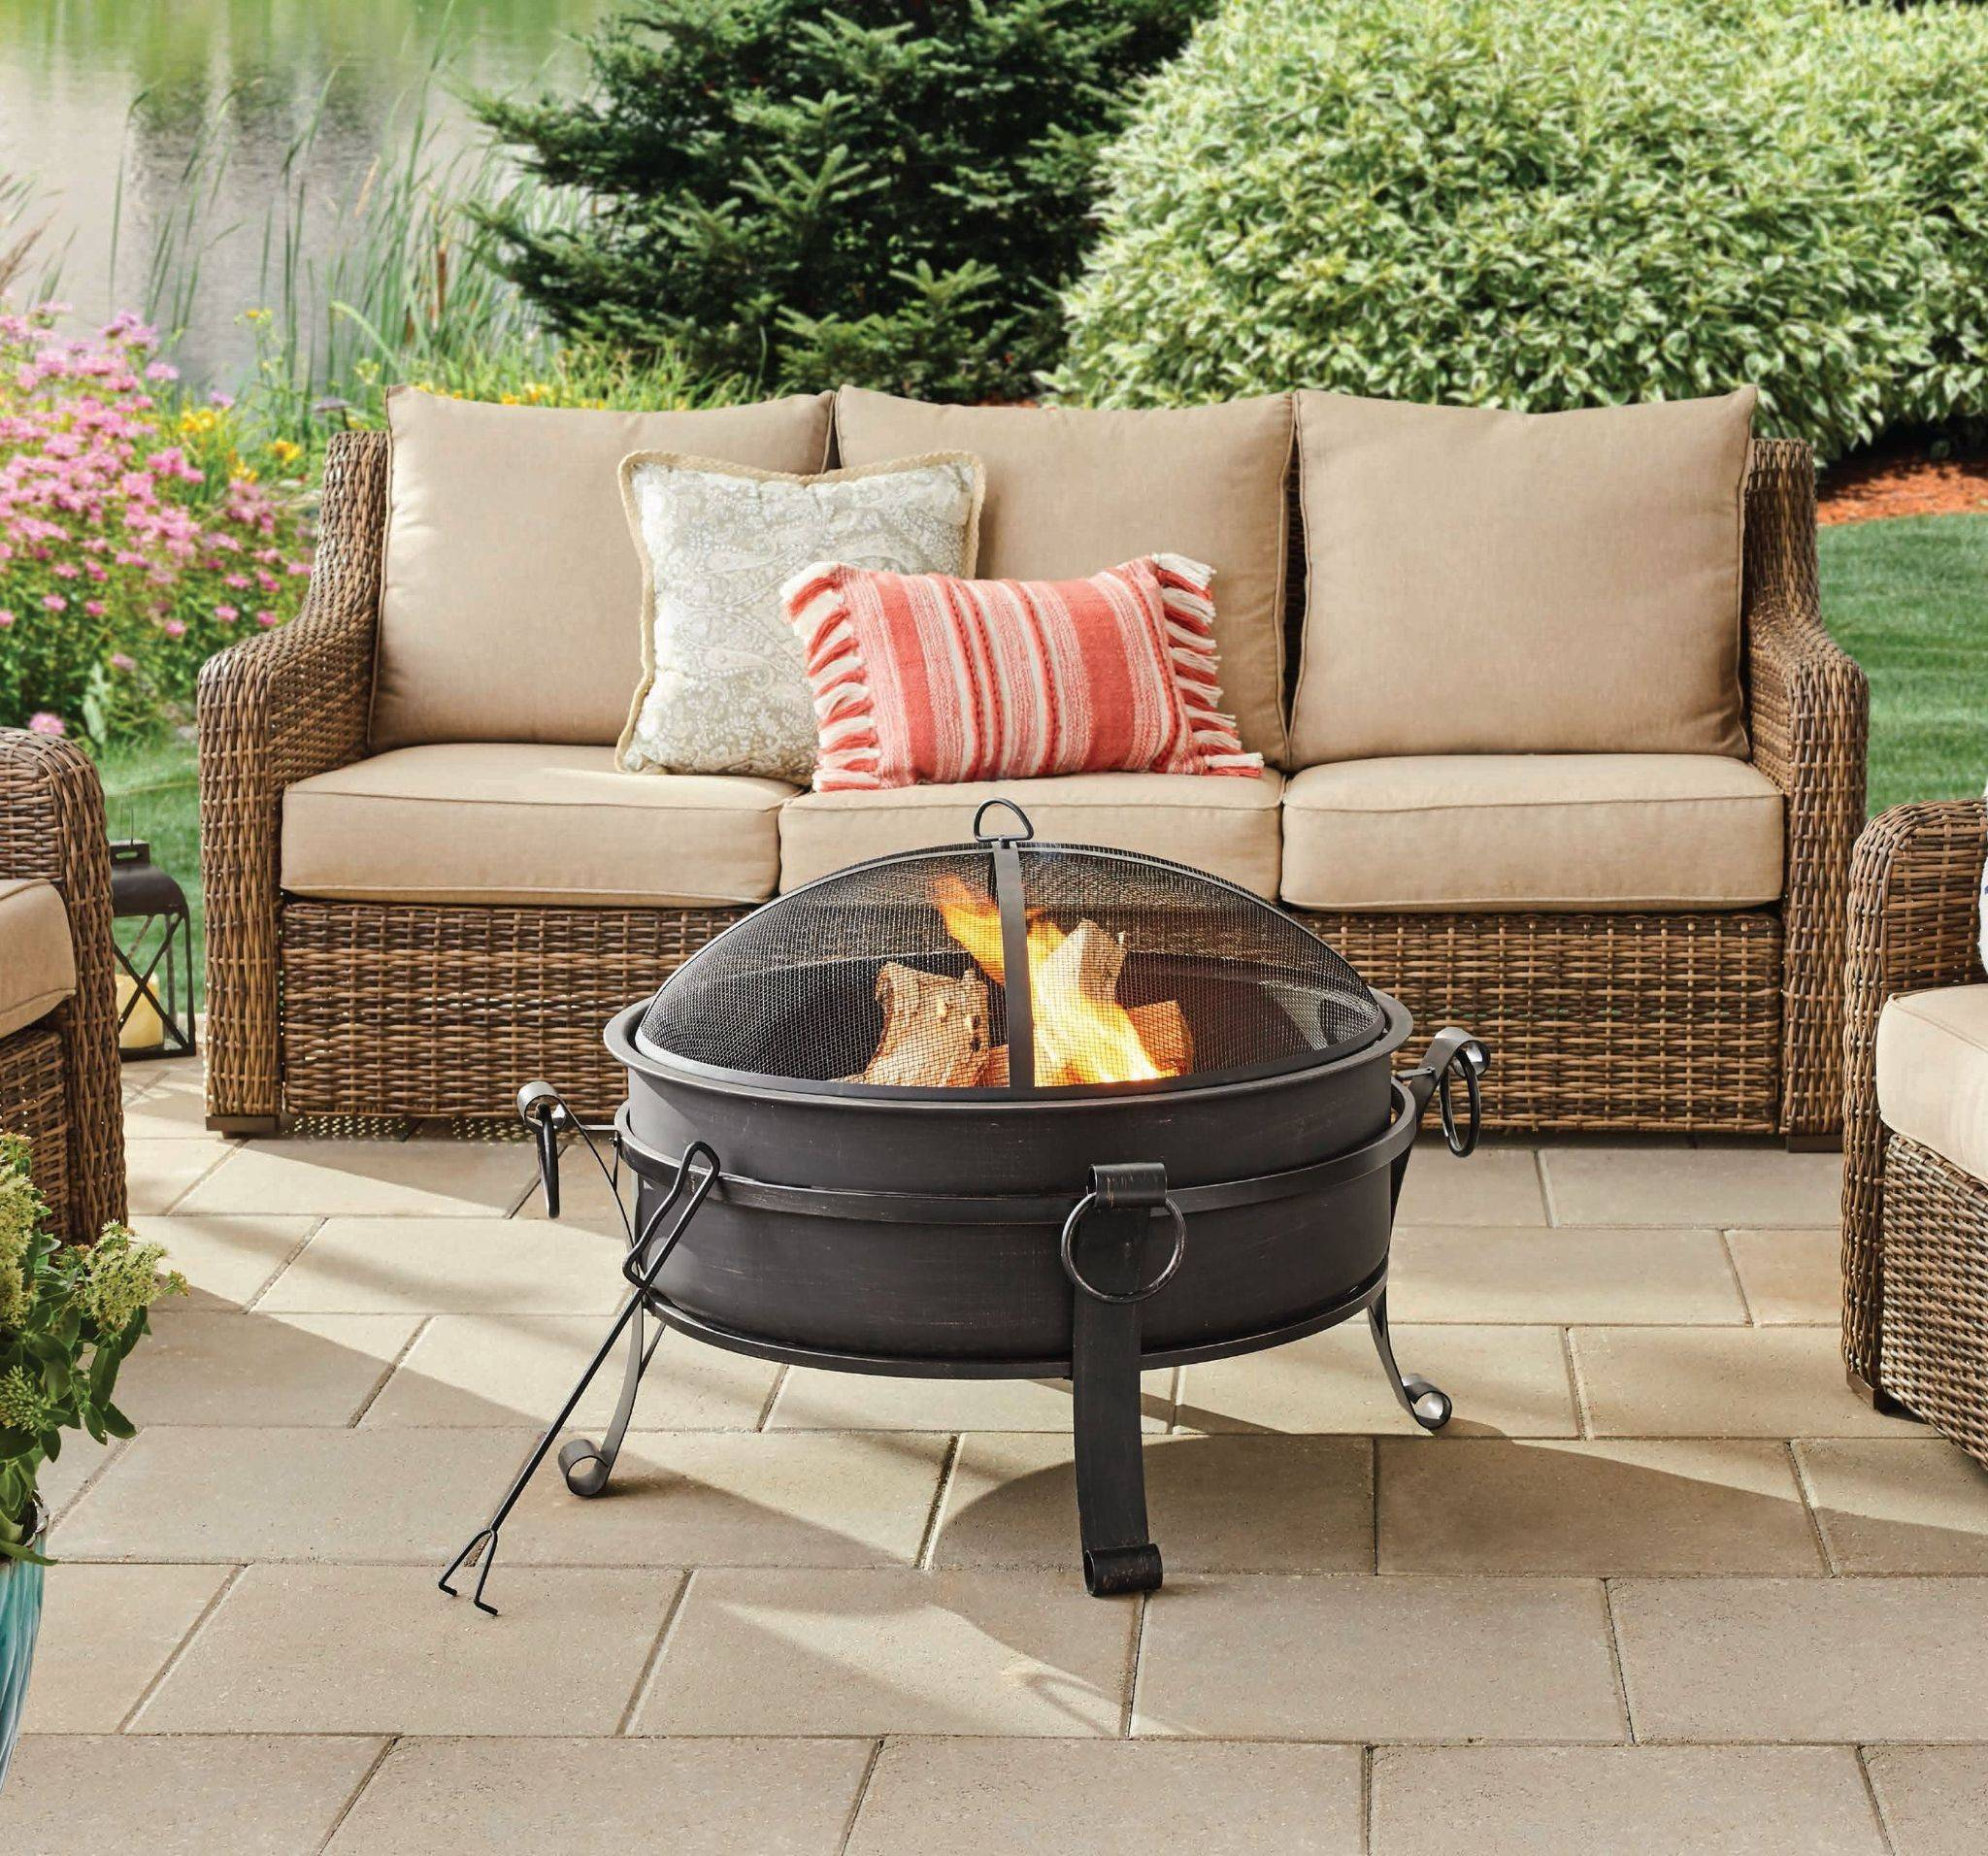 lighted firepit on stone patio